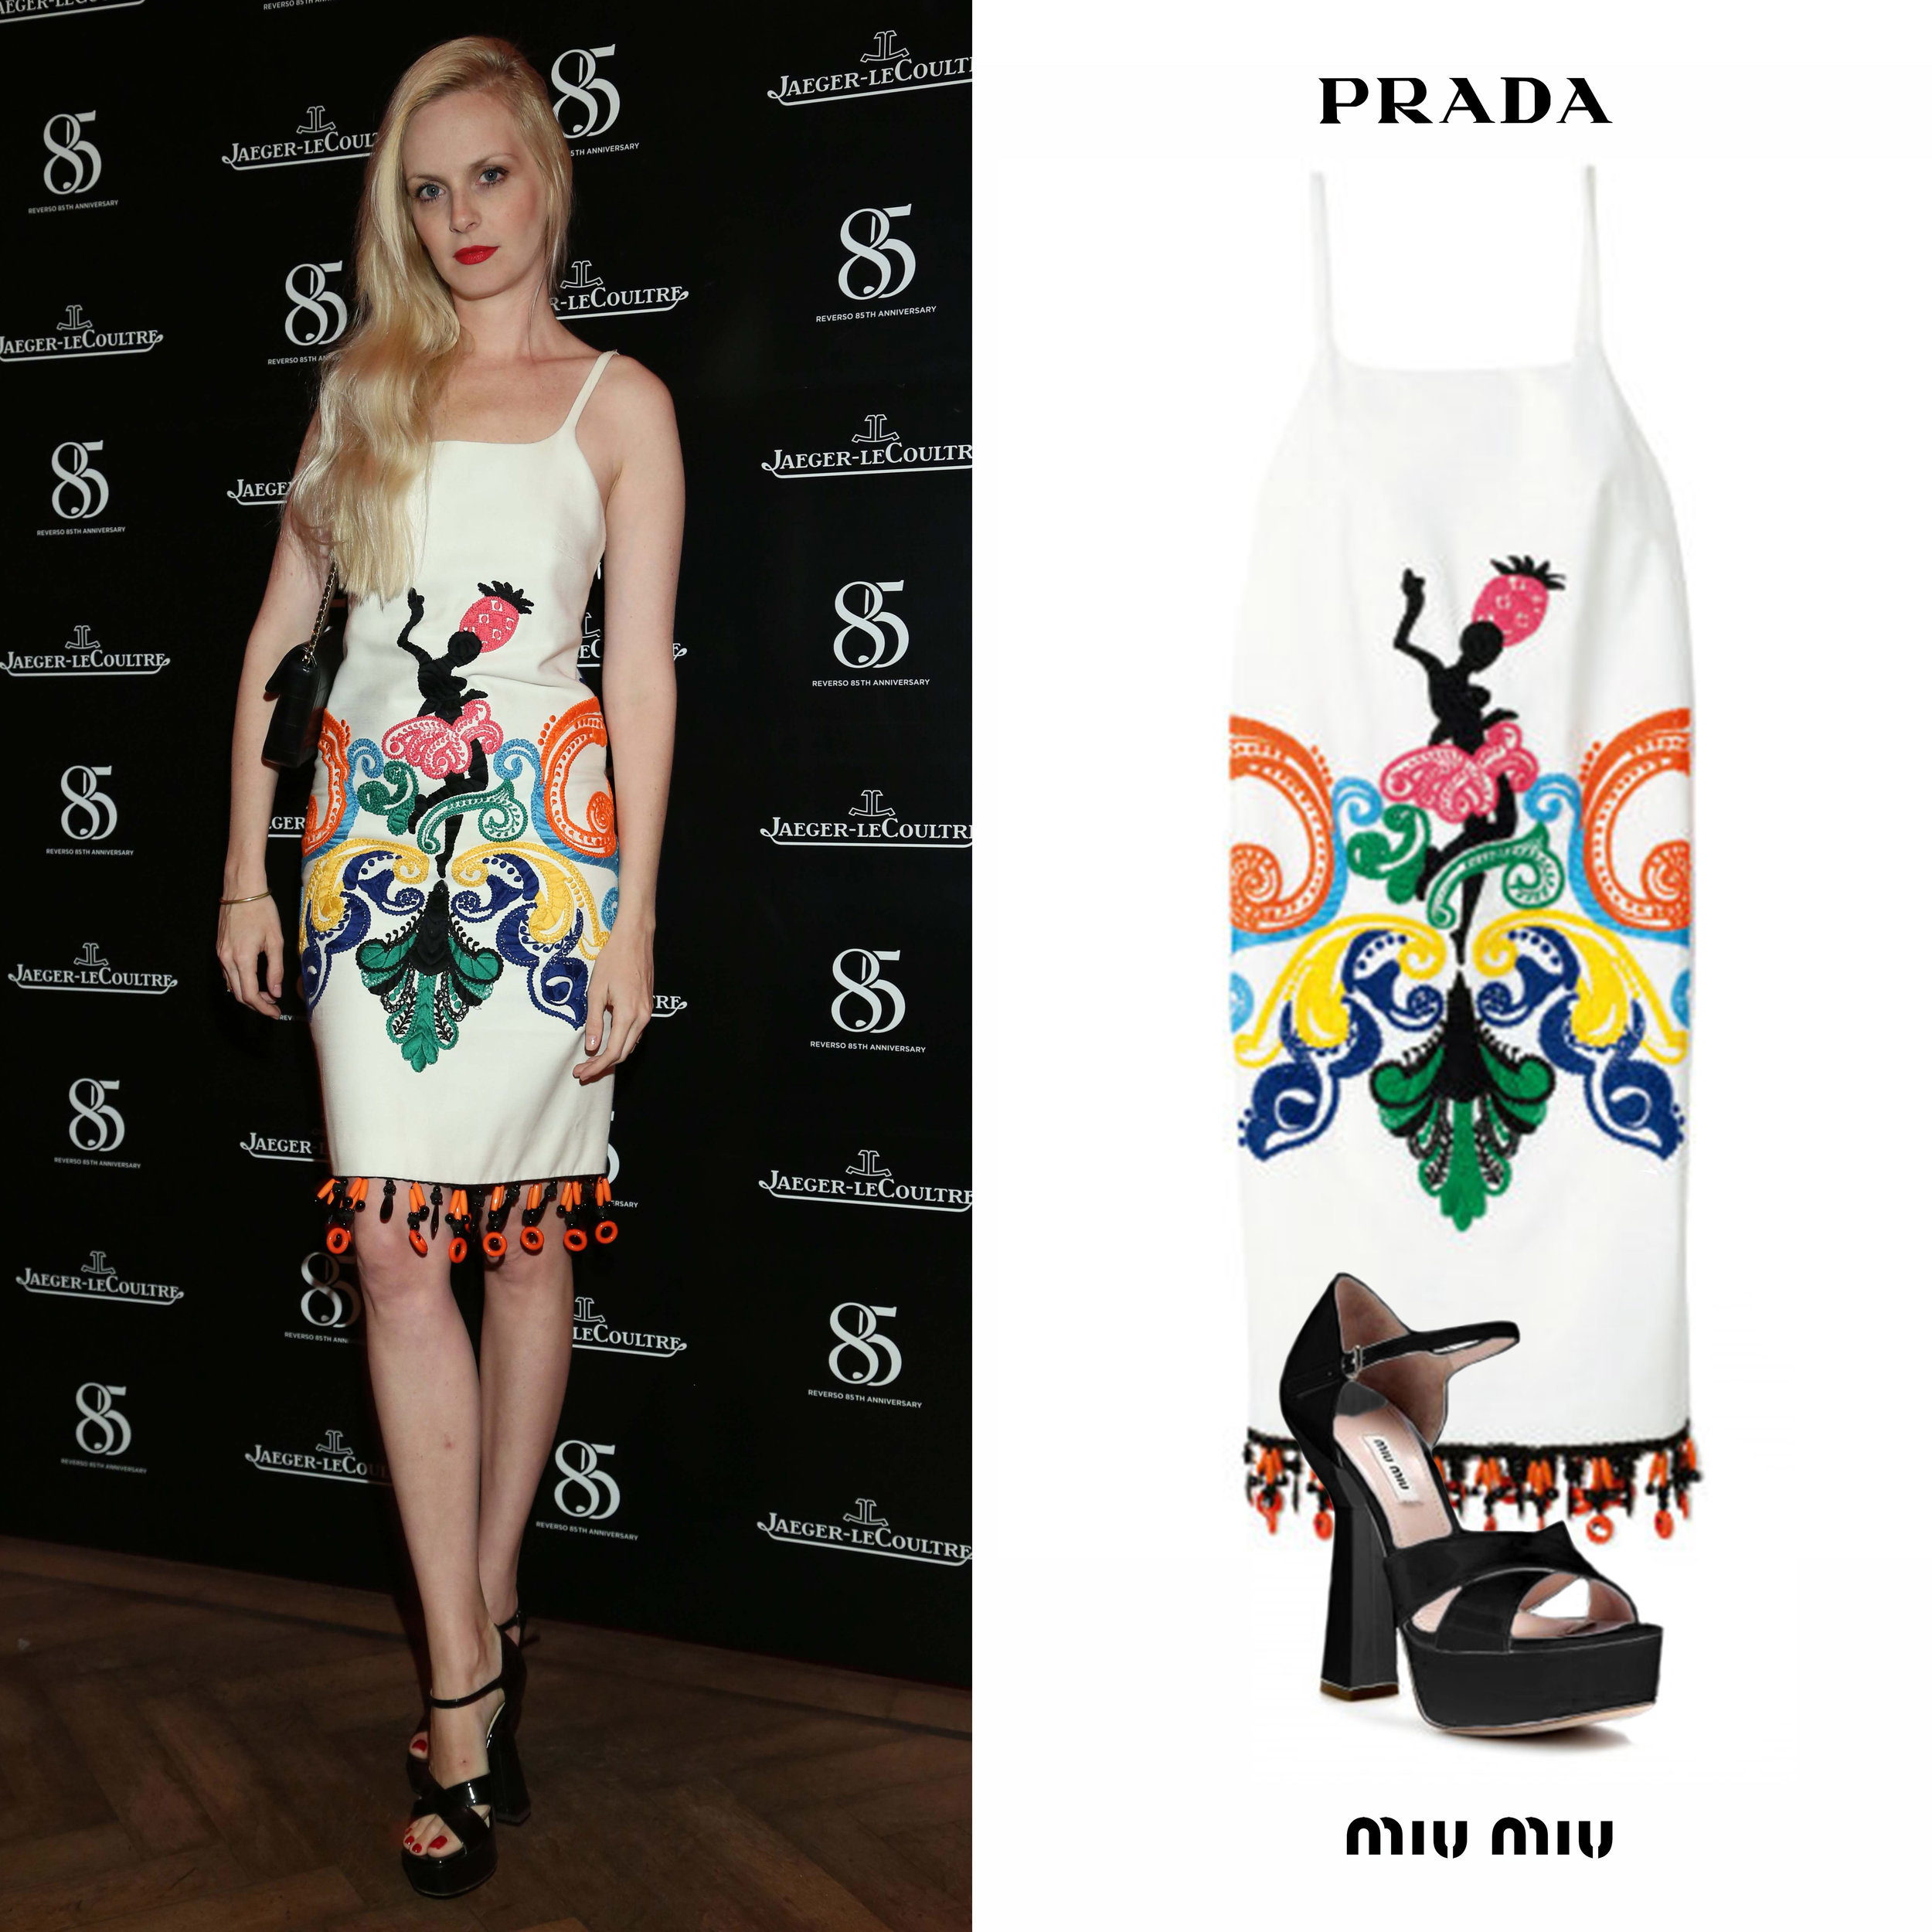 Sofia_Achaval_Buenos_Aires_Vestido_Prada_Embroidered_White_Dress_Miu_Miu_Jane_Black_Platform_Sandals.jpg